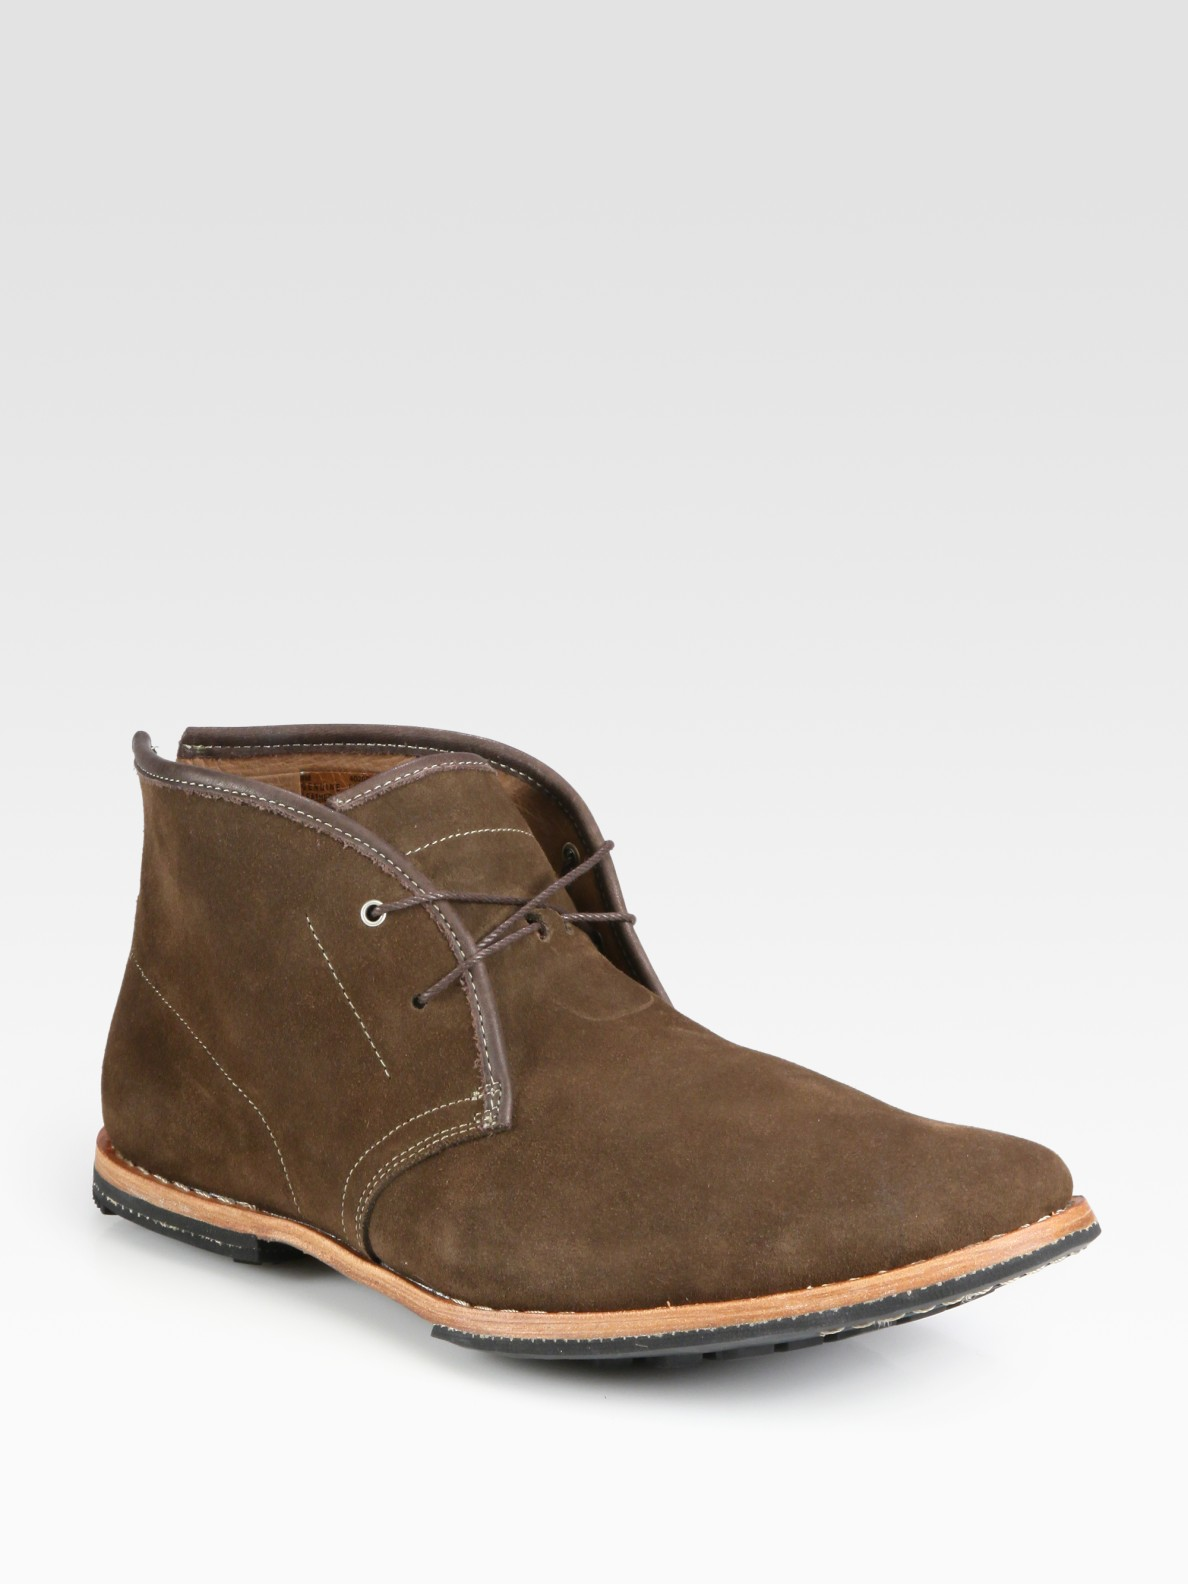 Lyst Timberland Wodehouse Chukka Boot In Brown For Men